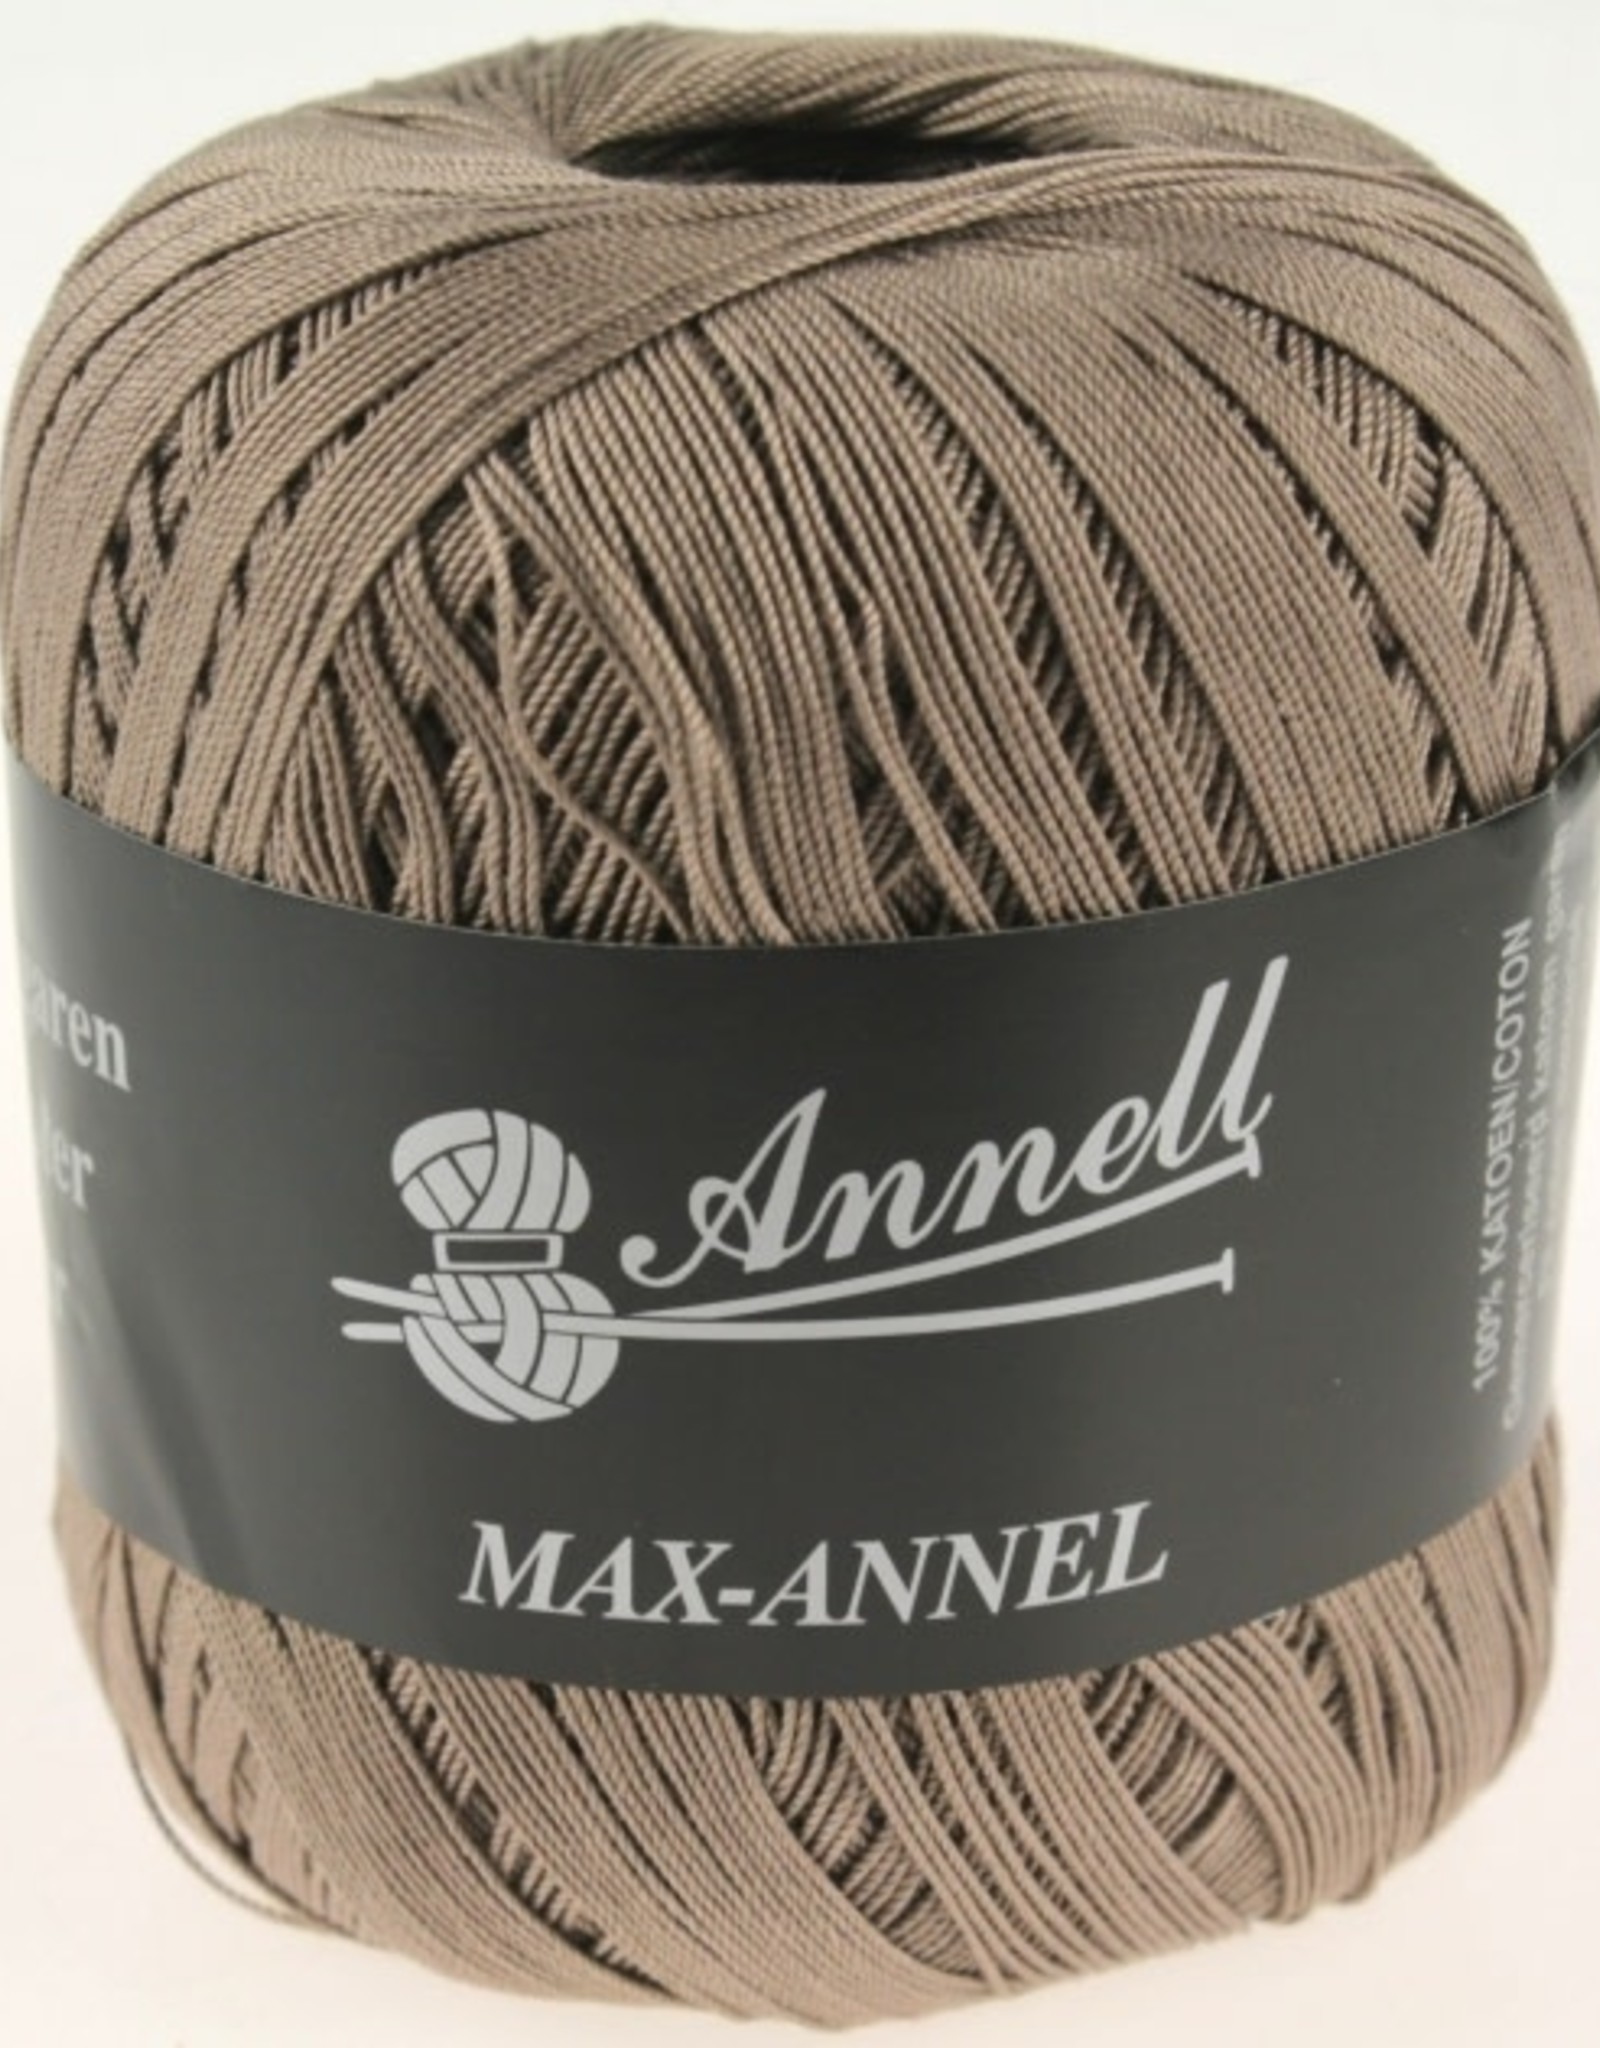 Annell Annell Max Annell 3431